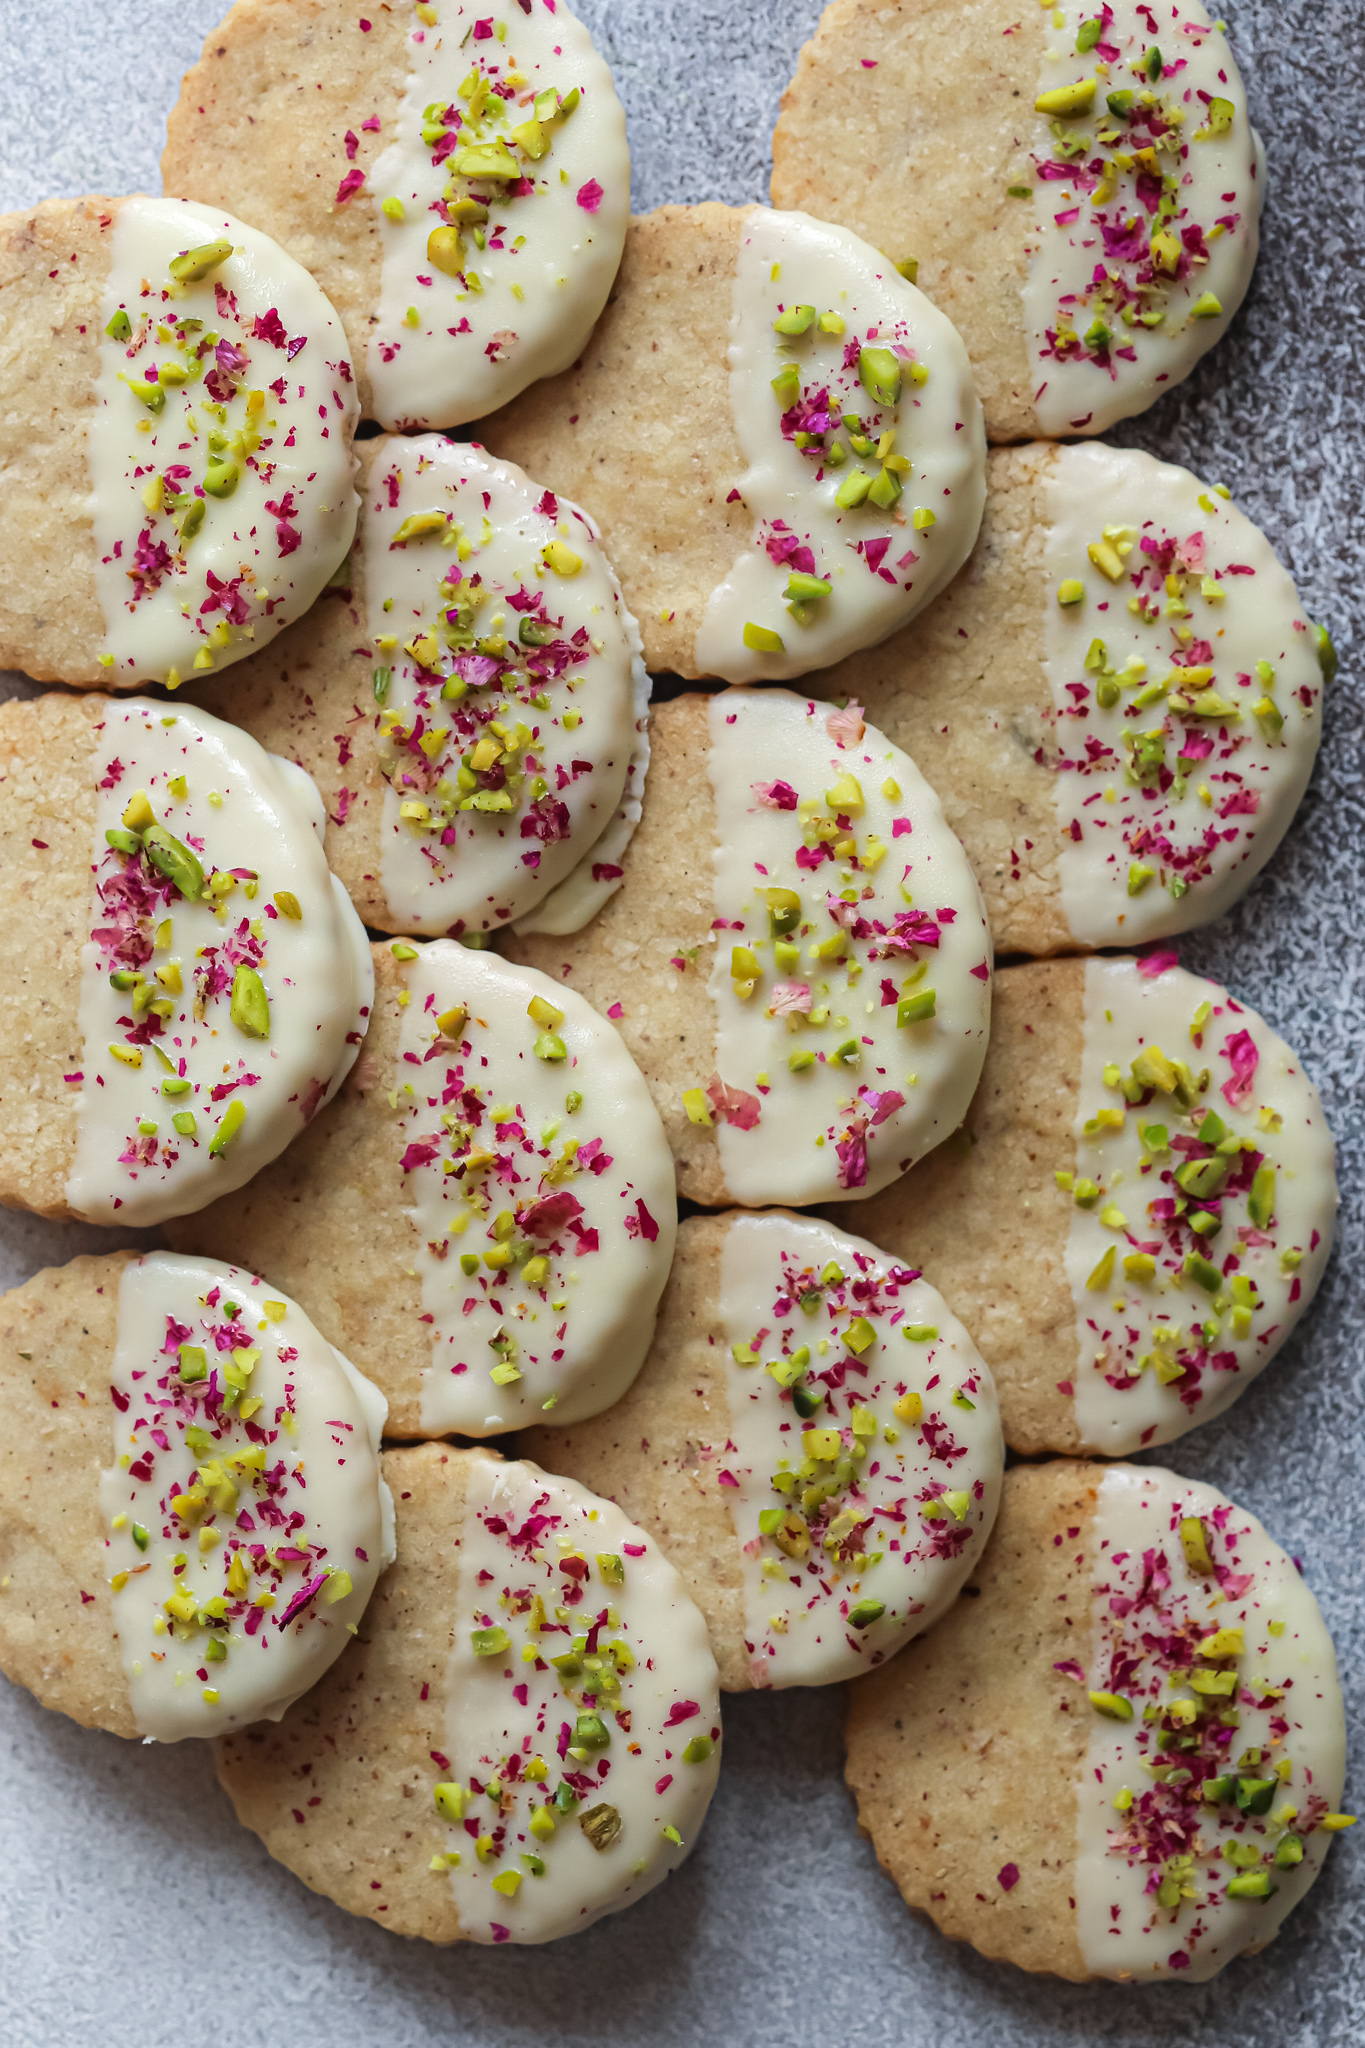 Thandai cookies dipped in white chocolate with pistachios and rose petals